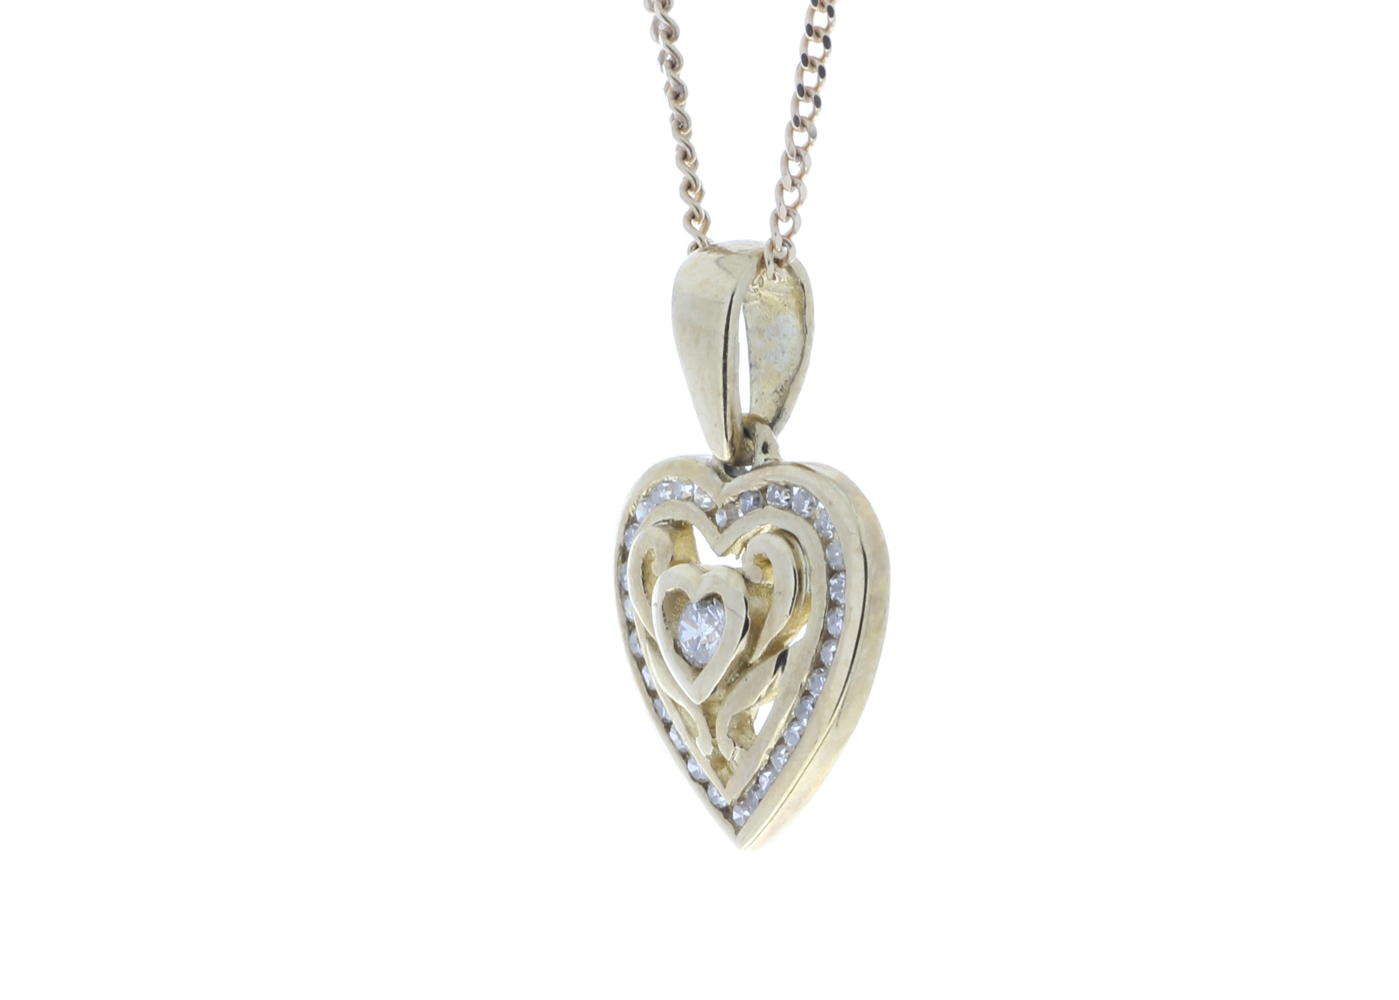 9ct Yellow Gold Heart Pendant Set With Diamonds With Centre Heart and Swirls 0.18 Carats - Image 4 of 4